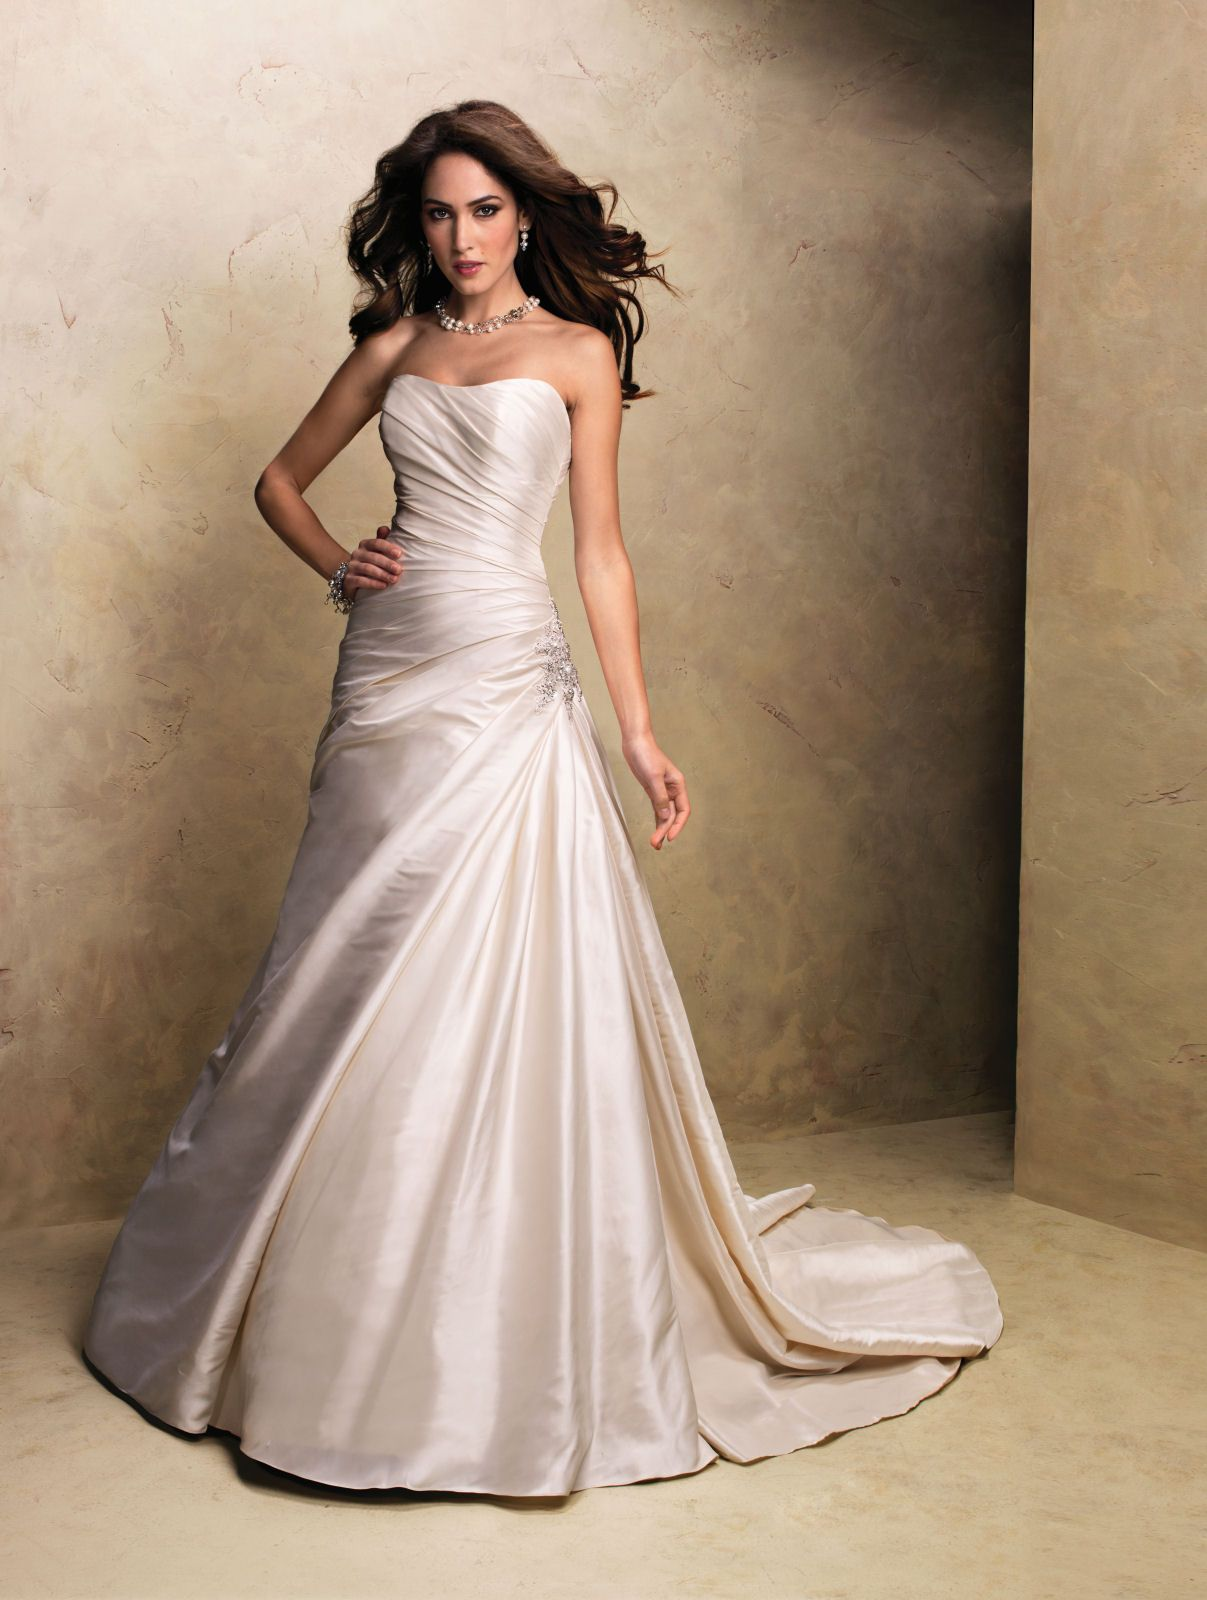 Benita from Maggie Sottero | Wedding Dresses & Shoes | Pinterest ...